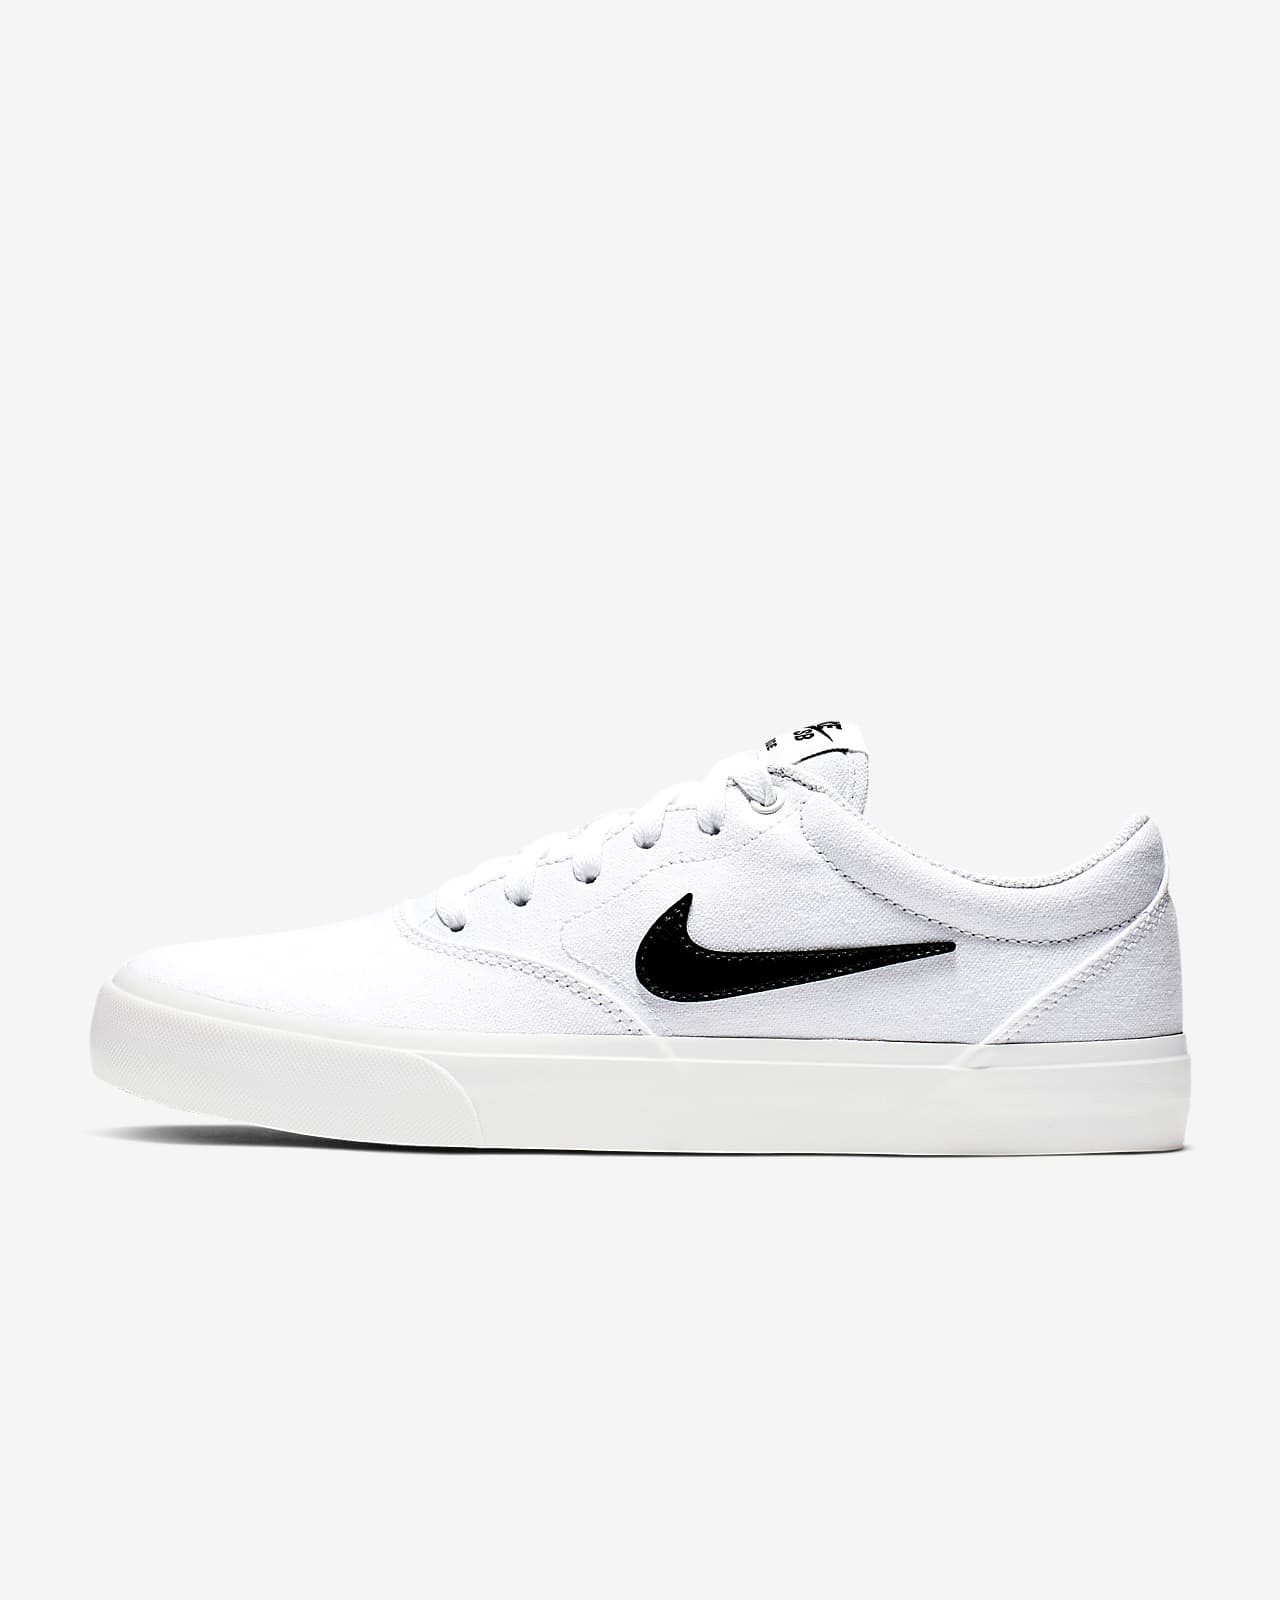 Chaussure de skateboard Nike SB Charge Canvas